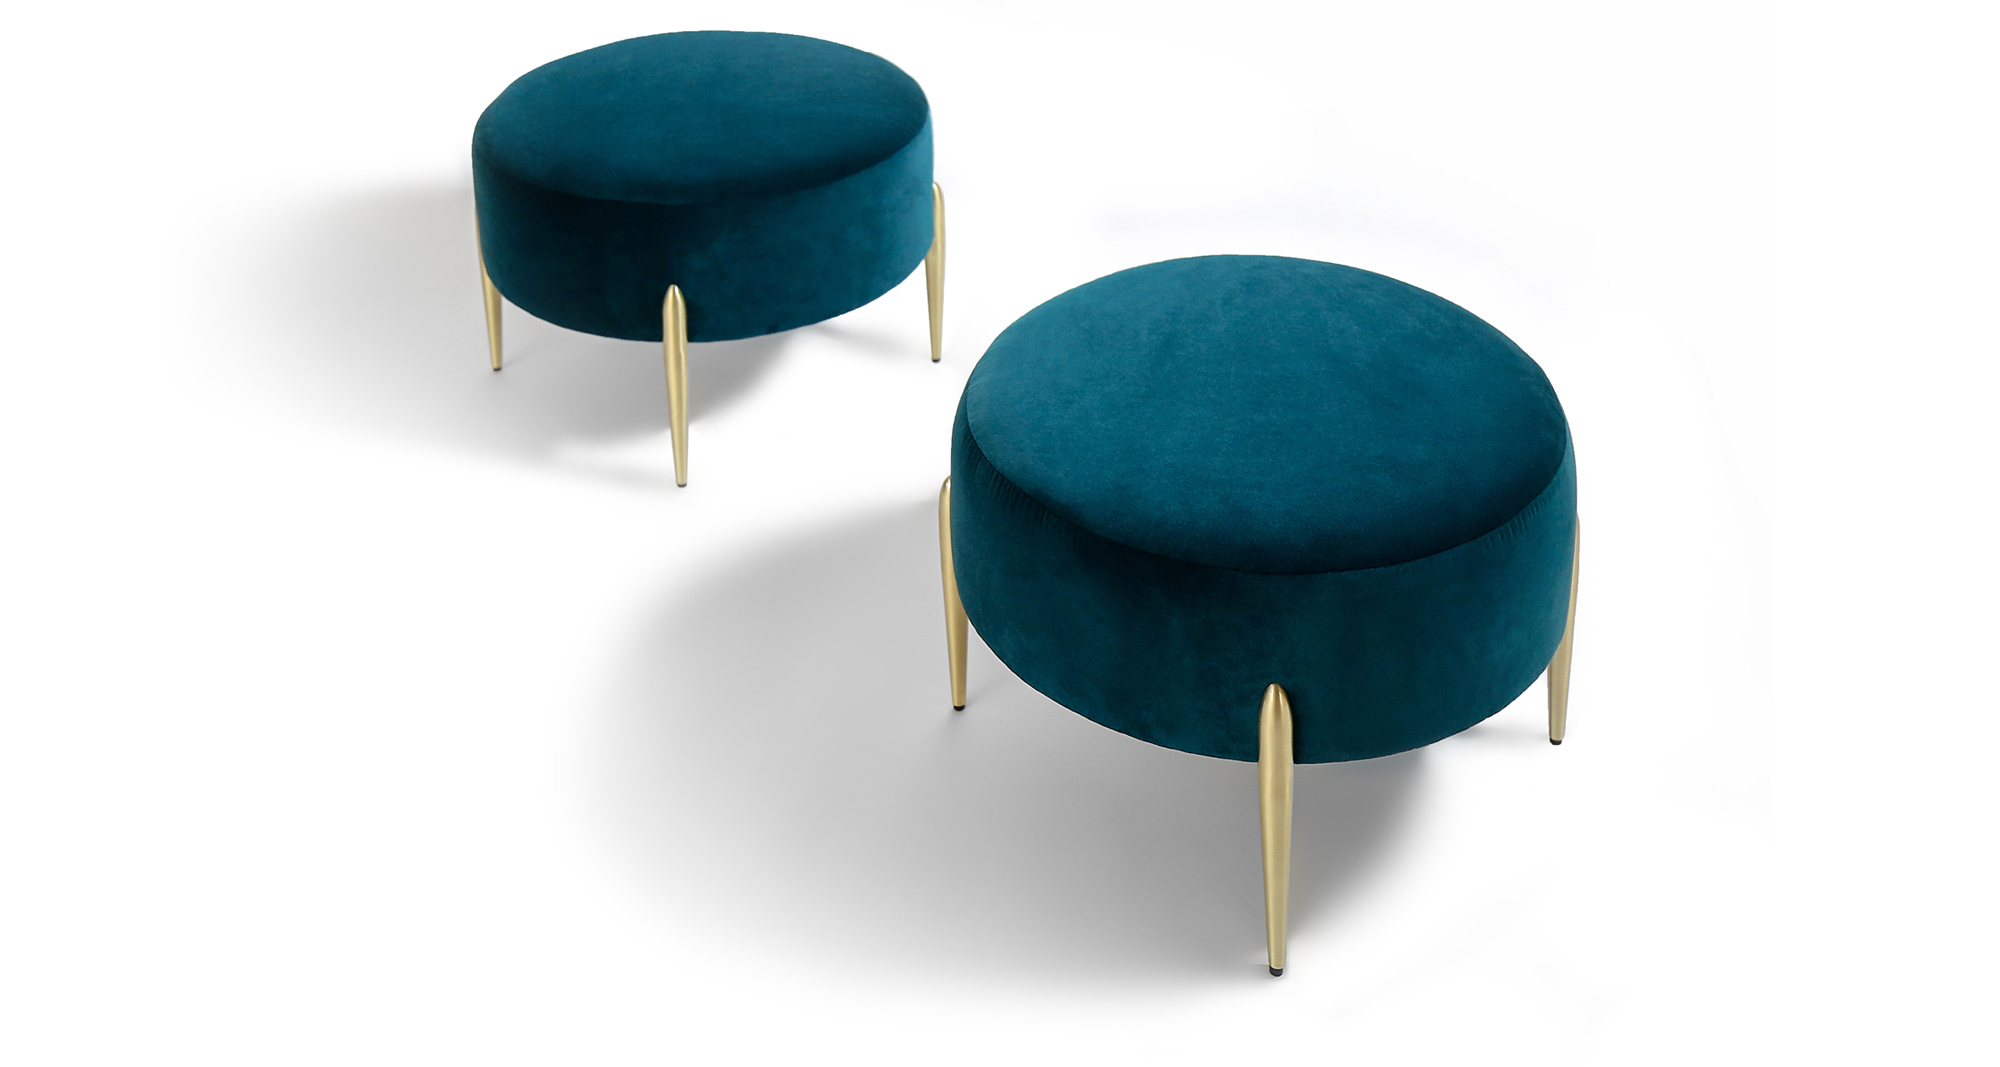 Decked Out Small Round Ottoman